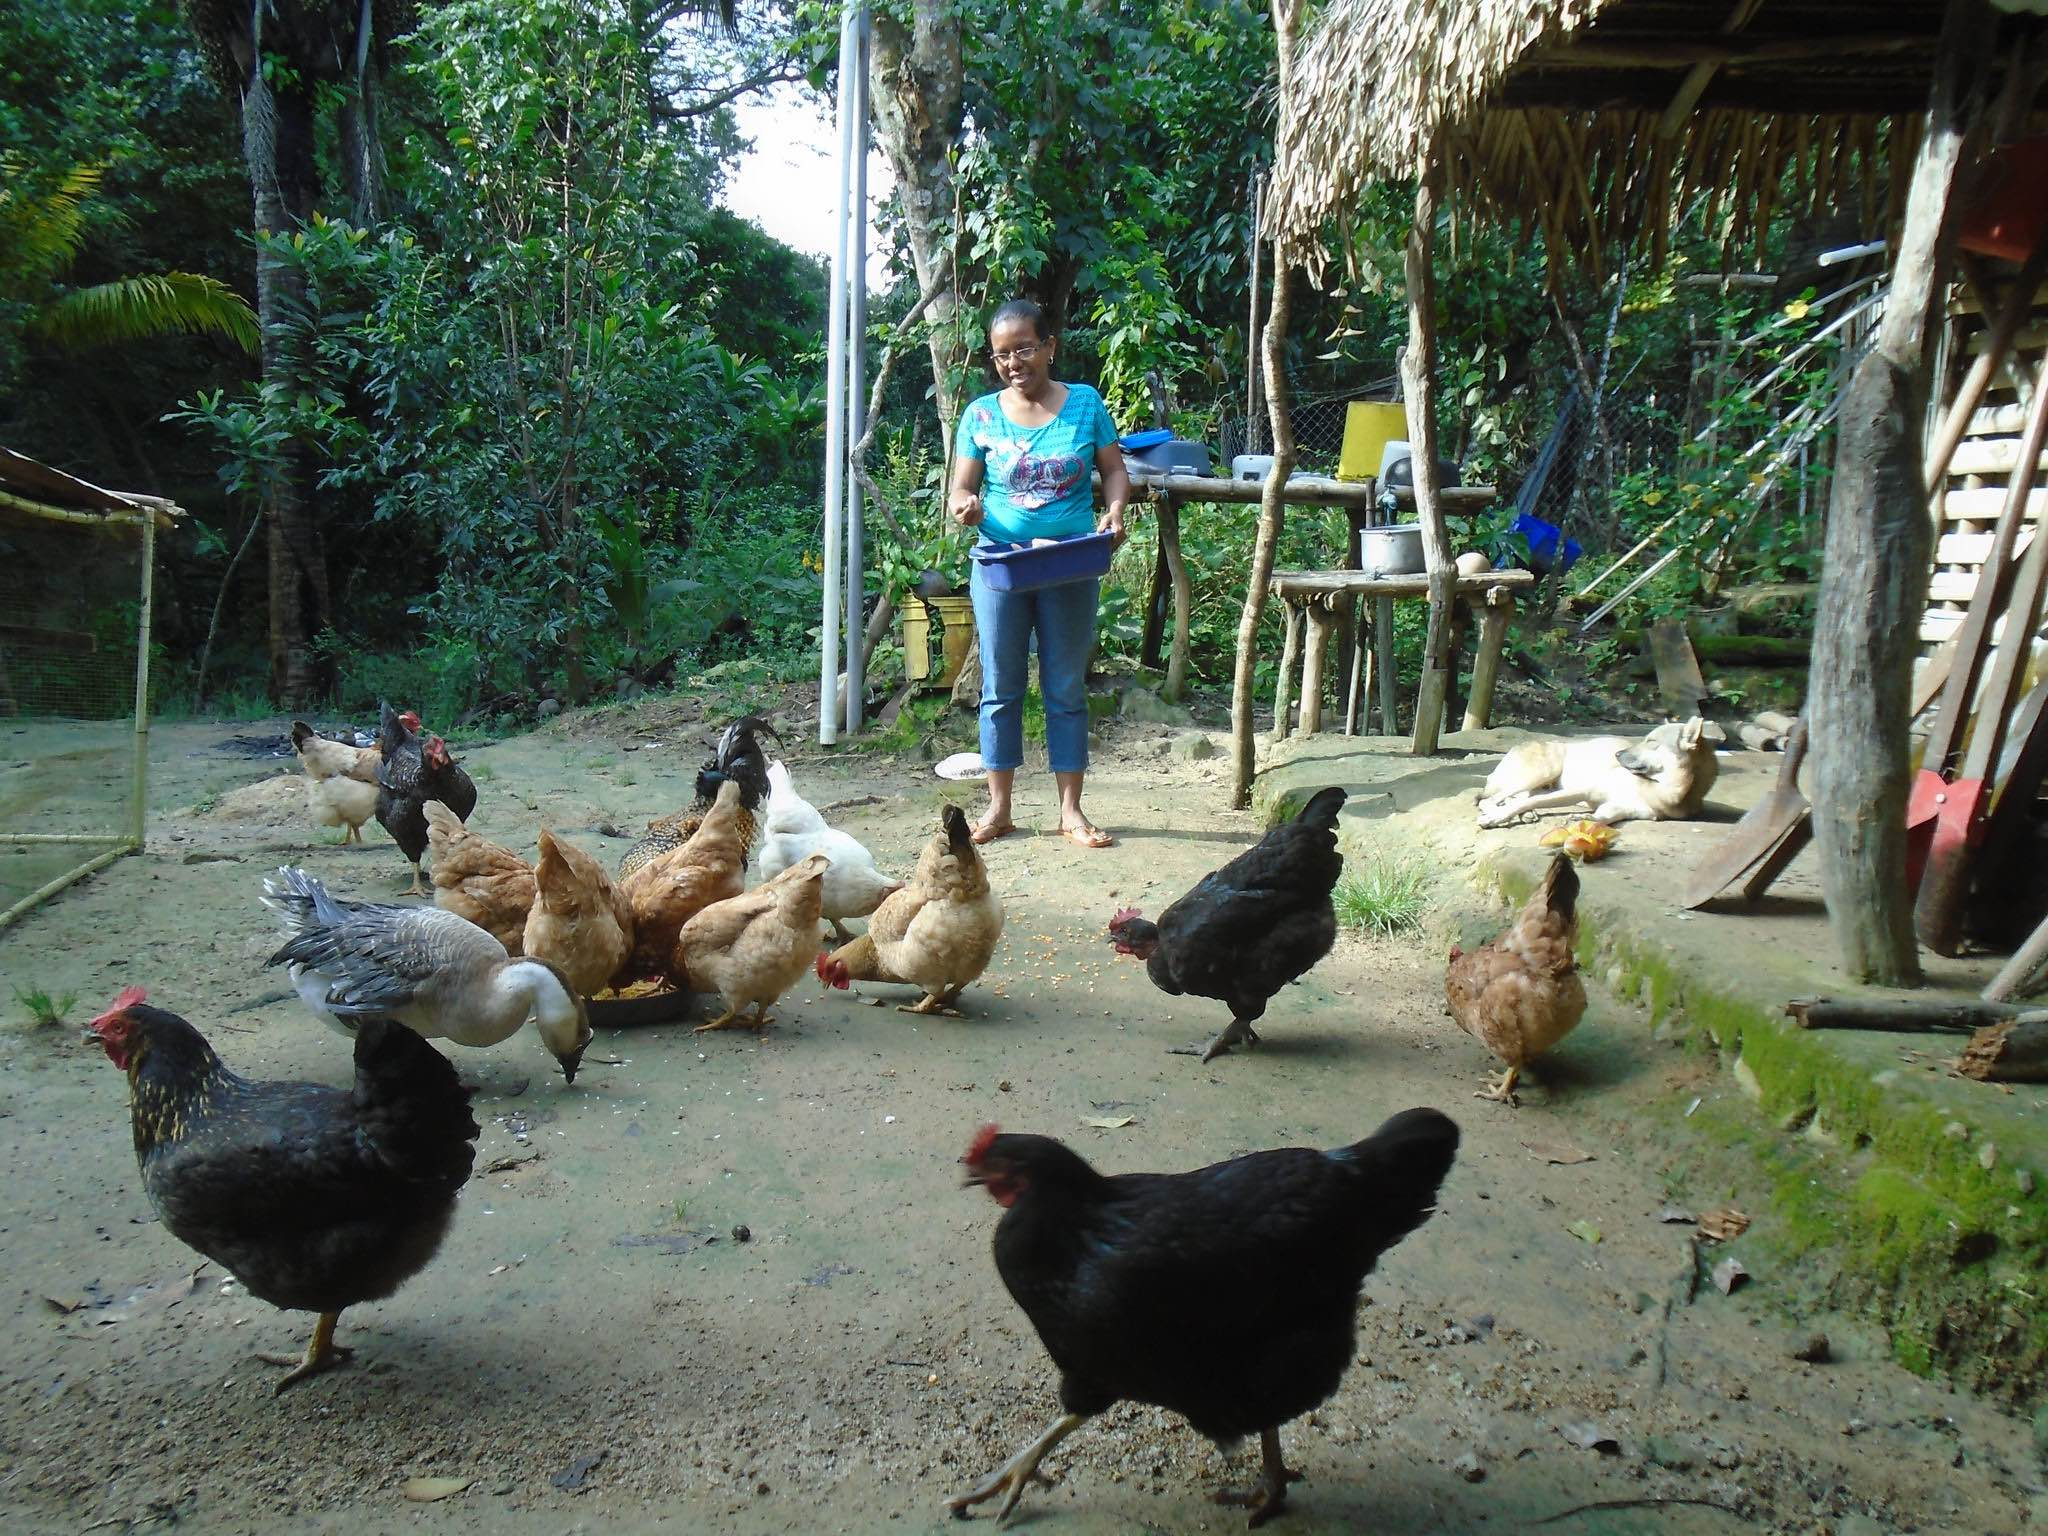 Nancy has taken out loans to expand her chicken livestock business.- photo by Dayra Julio